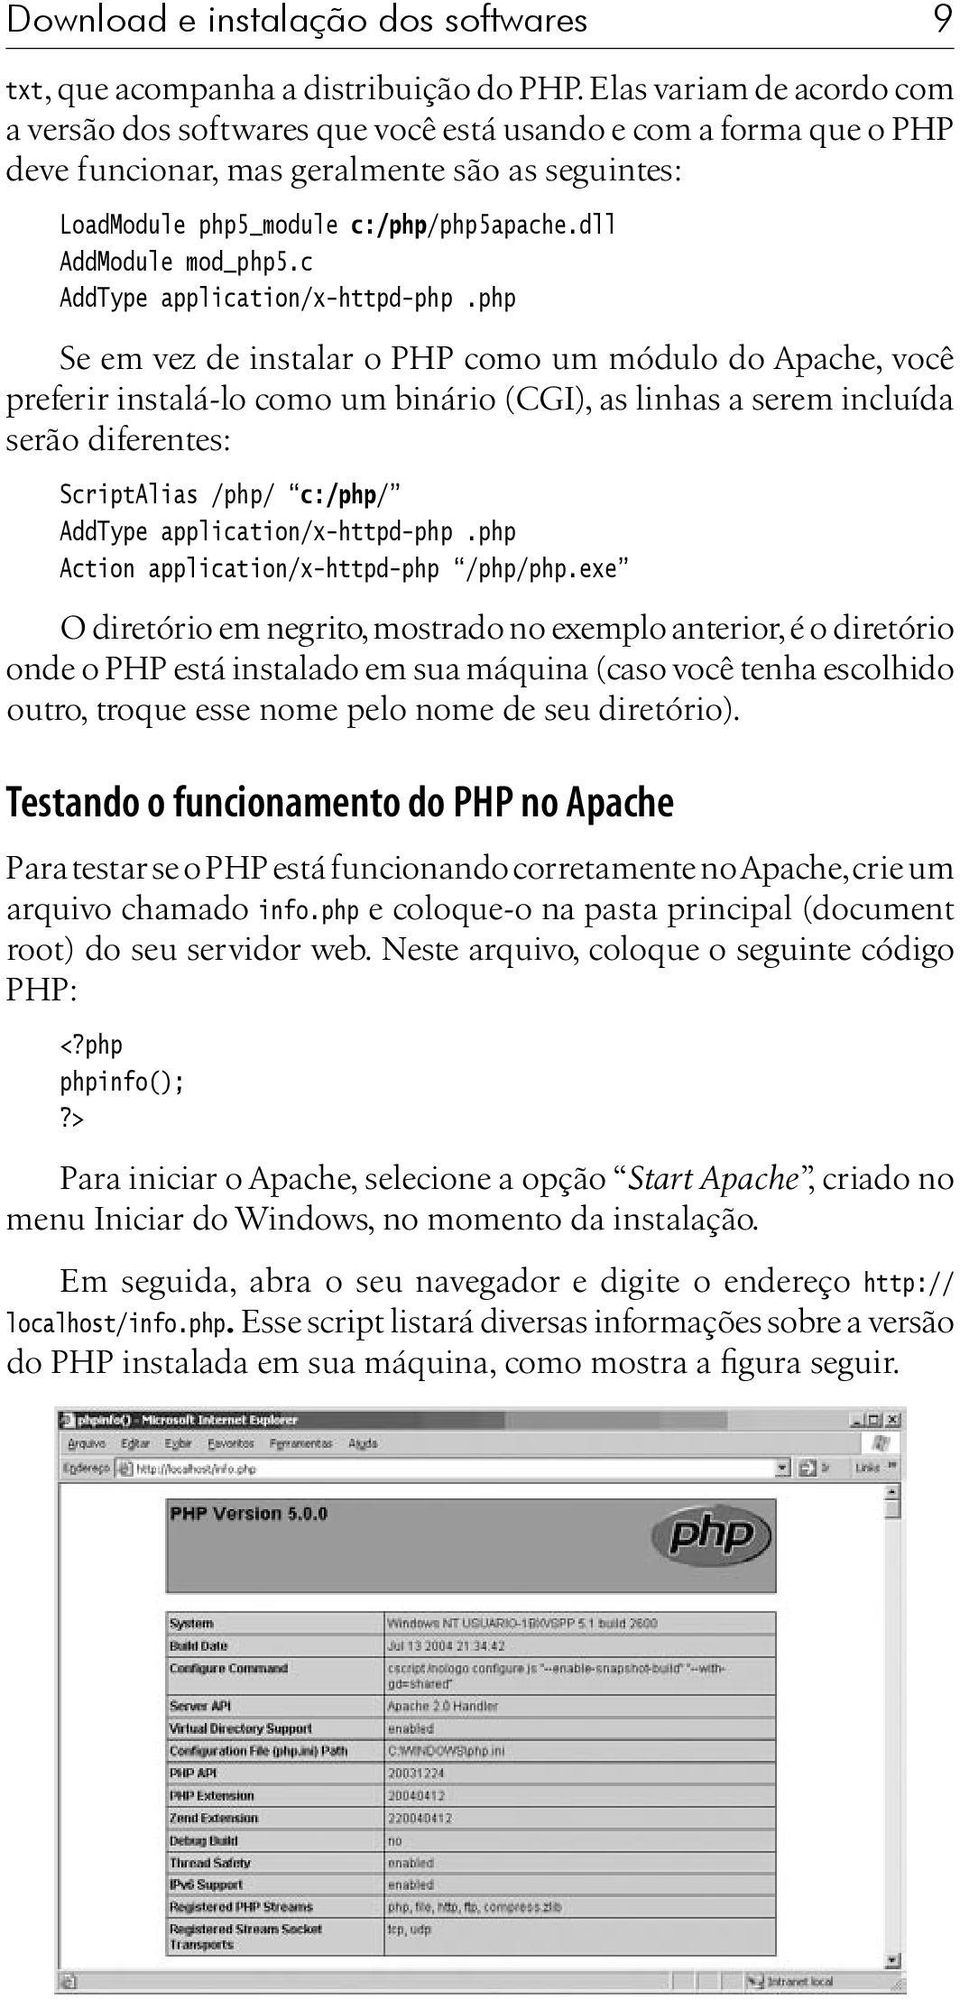 dll AddModule mod_php5.c AddType application/x-httpd-php.